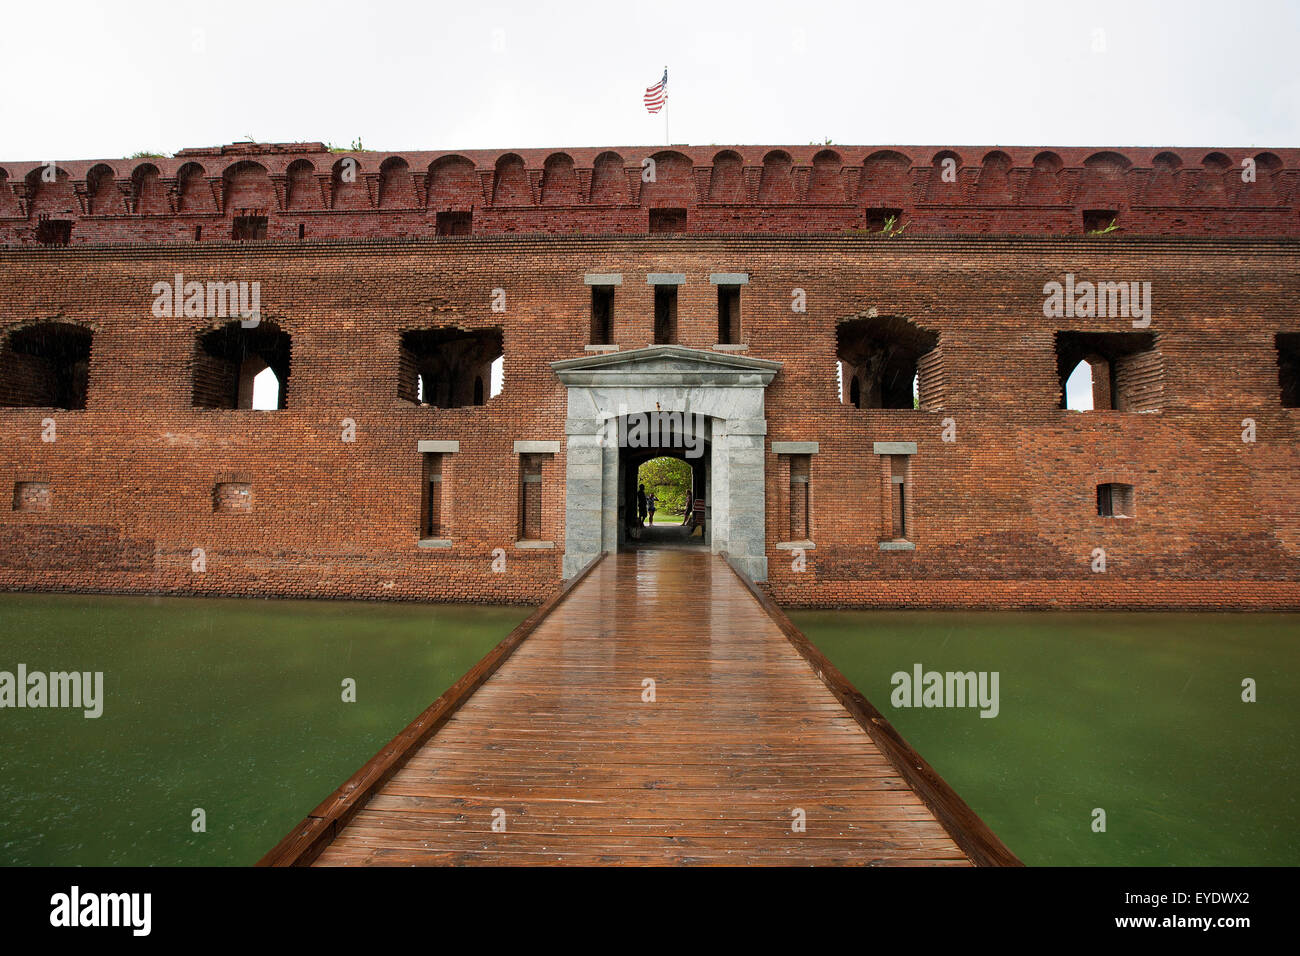 Entrance across a moat into Fort Jefferson, Dry Tortugas National Park, Florida, United States of America Stock Photo